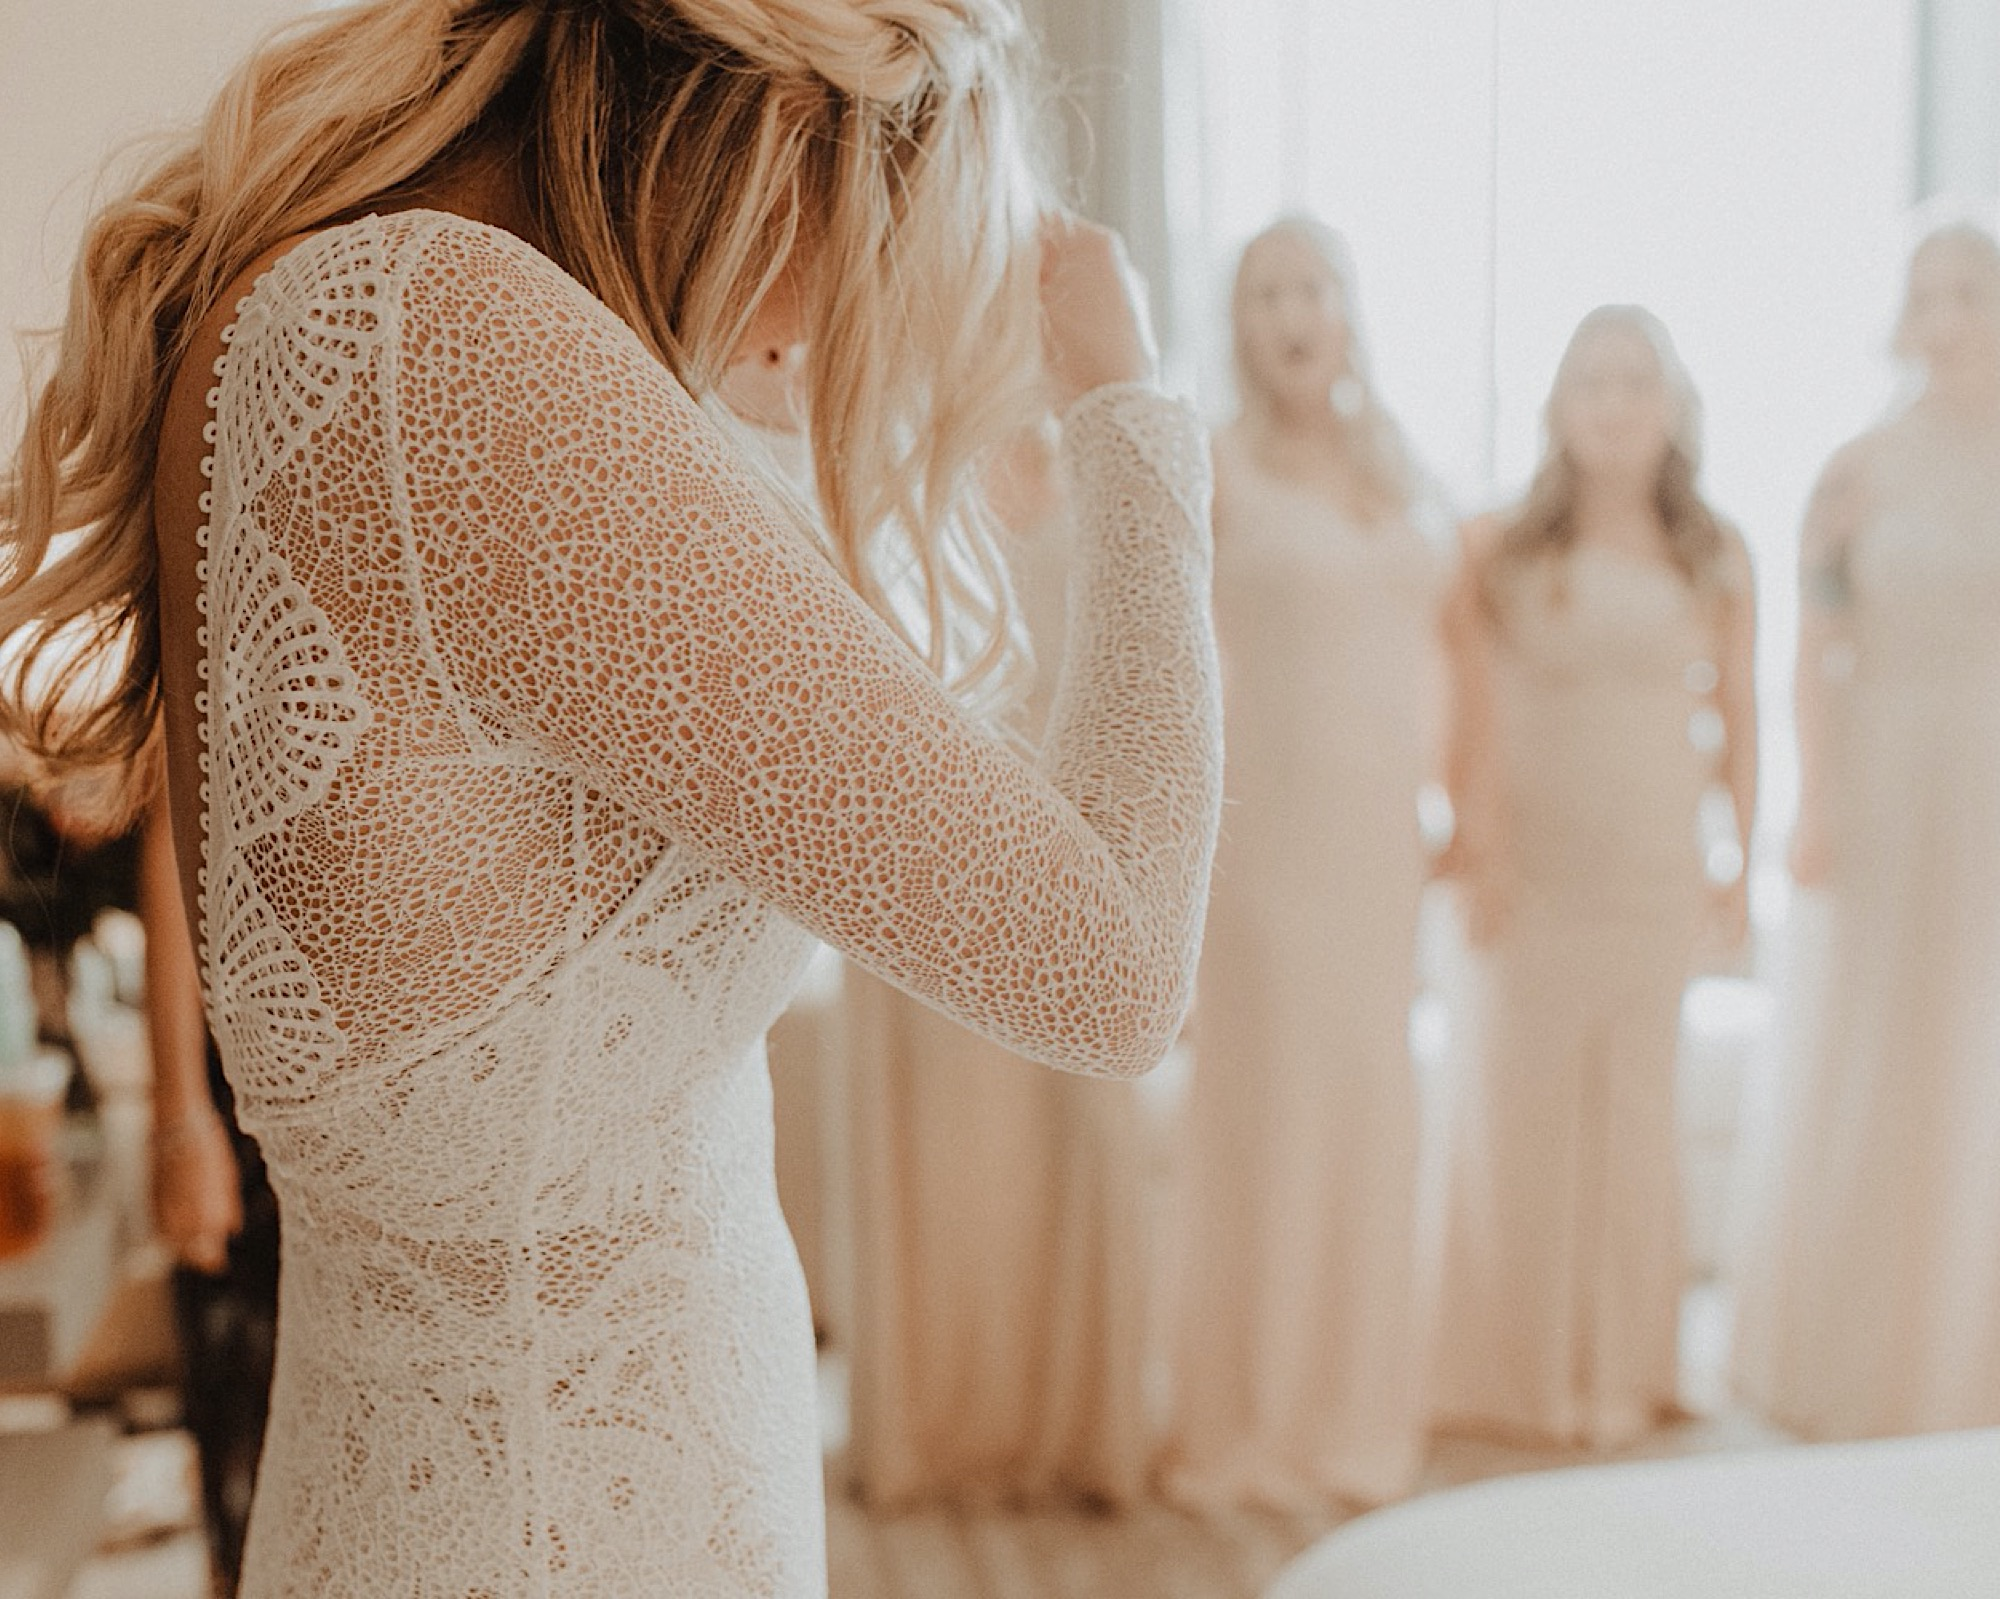 grace loves lace Inca gown worn by bride at river center wedding